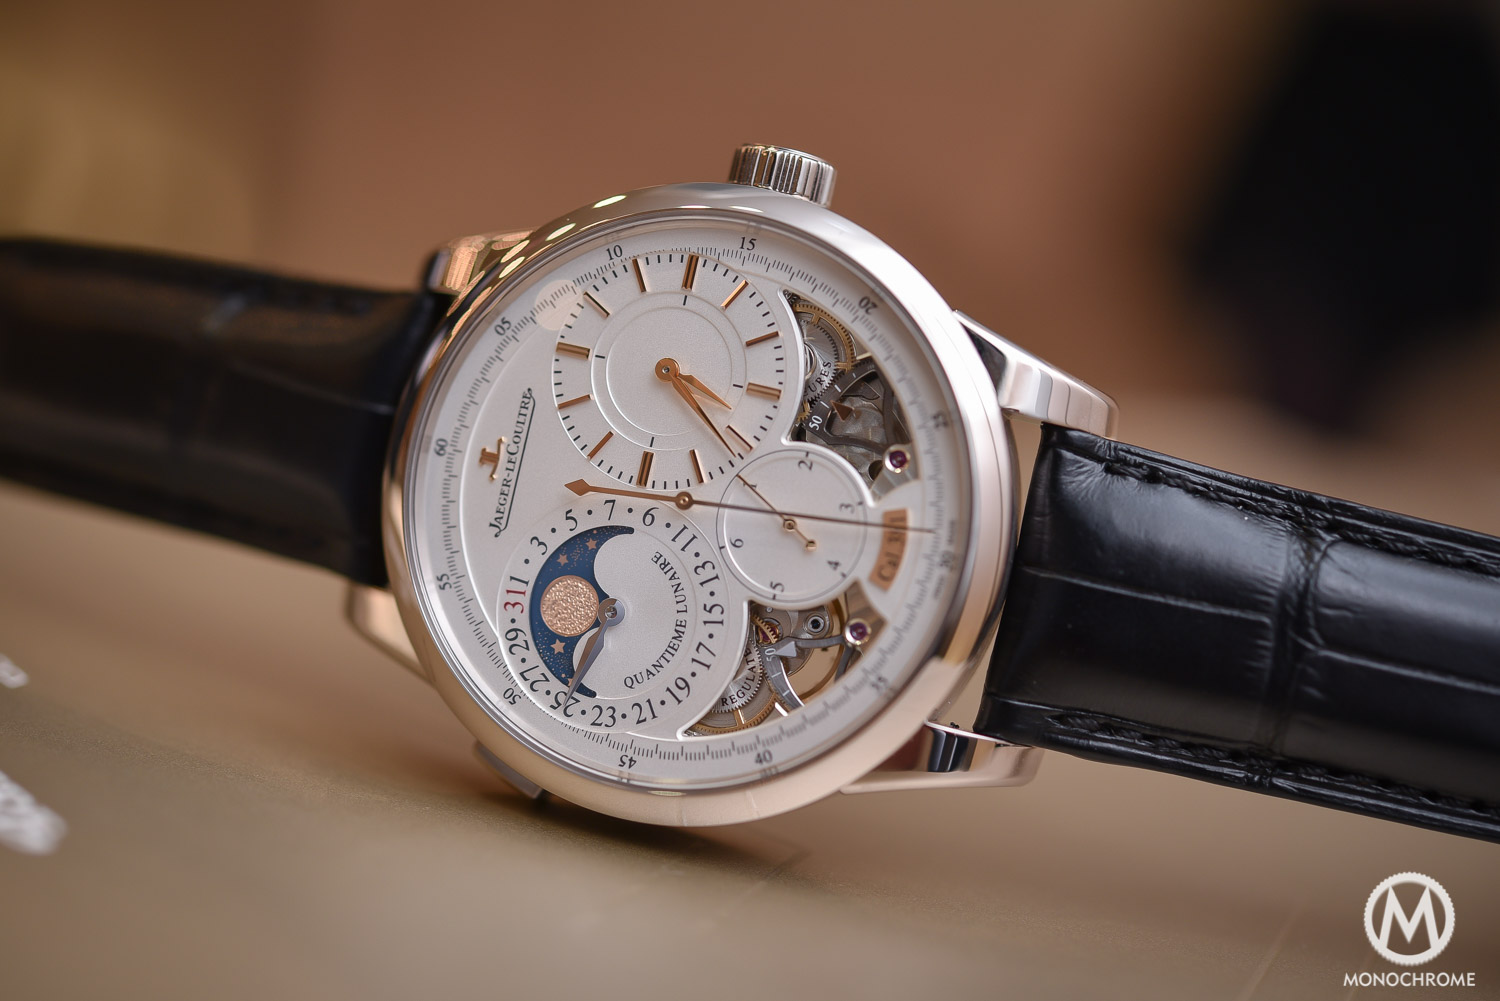 Jaeger-LeCoultre Duometre Quantieme Lunaire in white gold and opened dial - 2